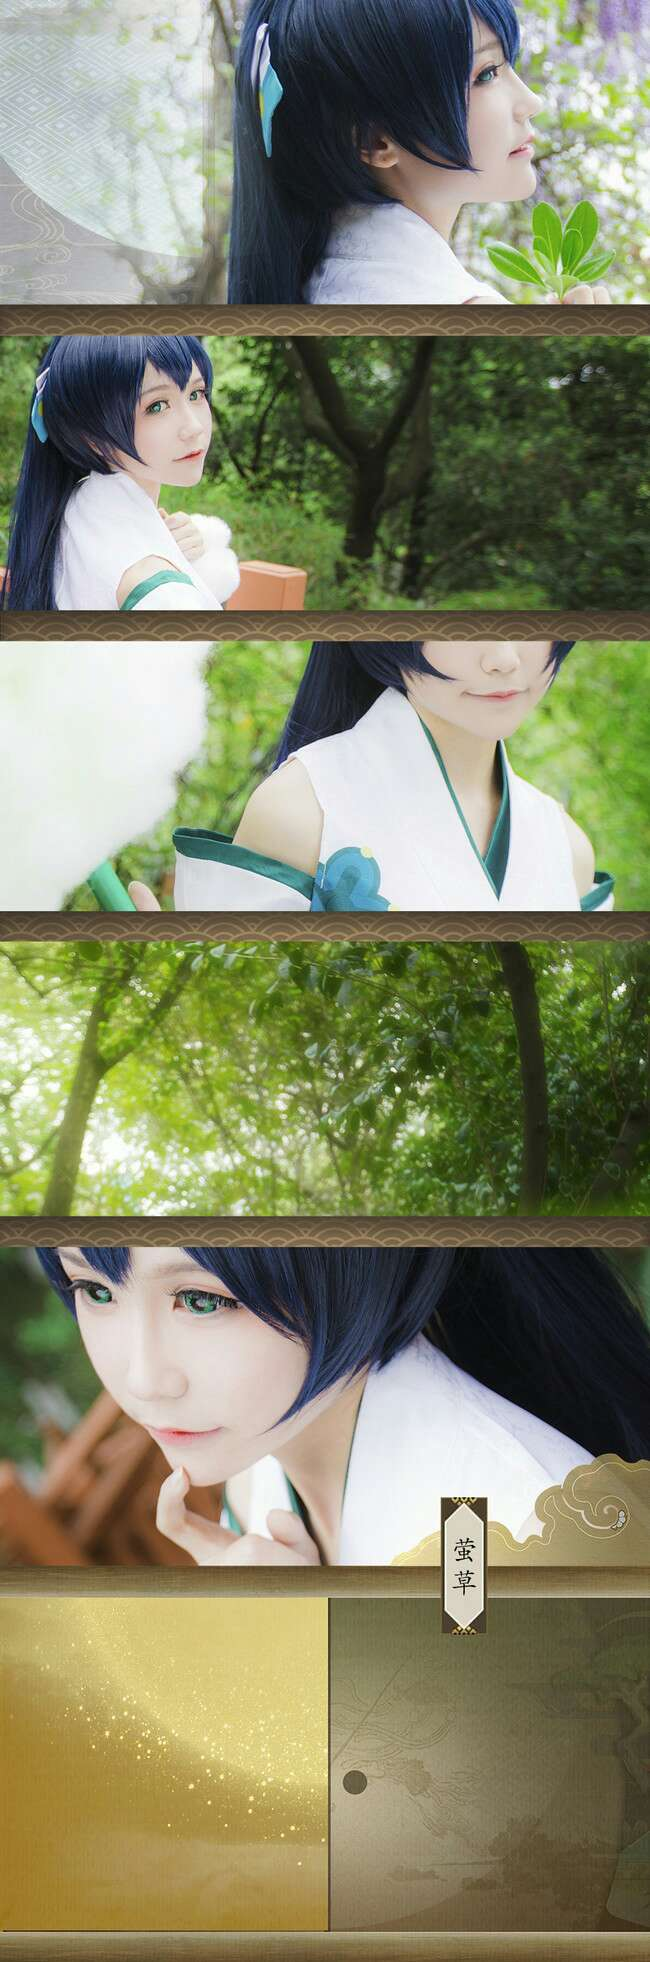 【cos】COSPLAY    320-小柚妹站